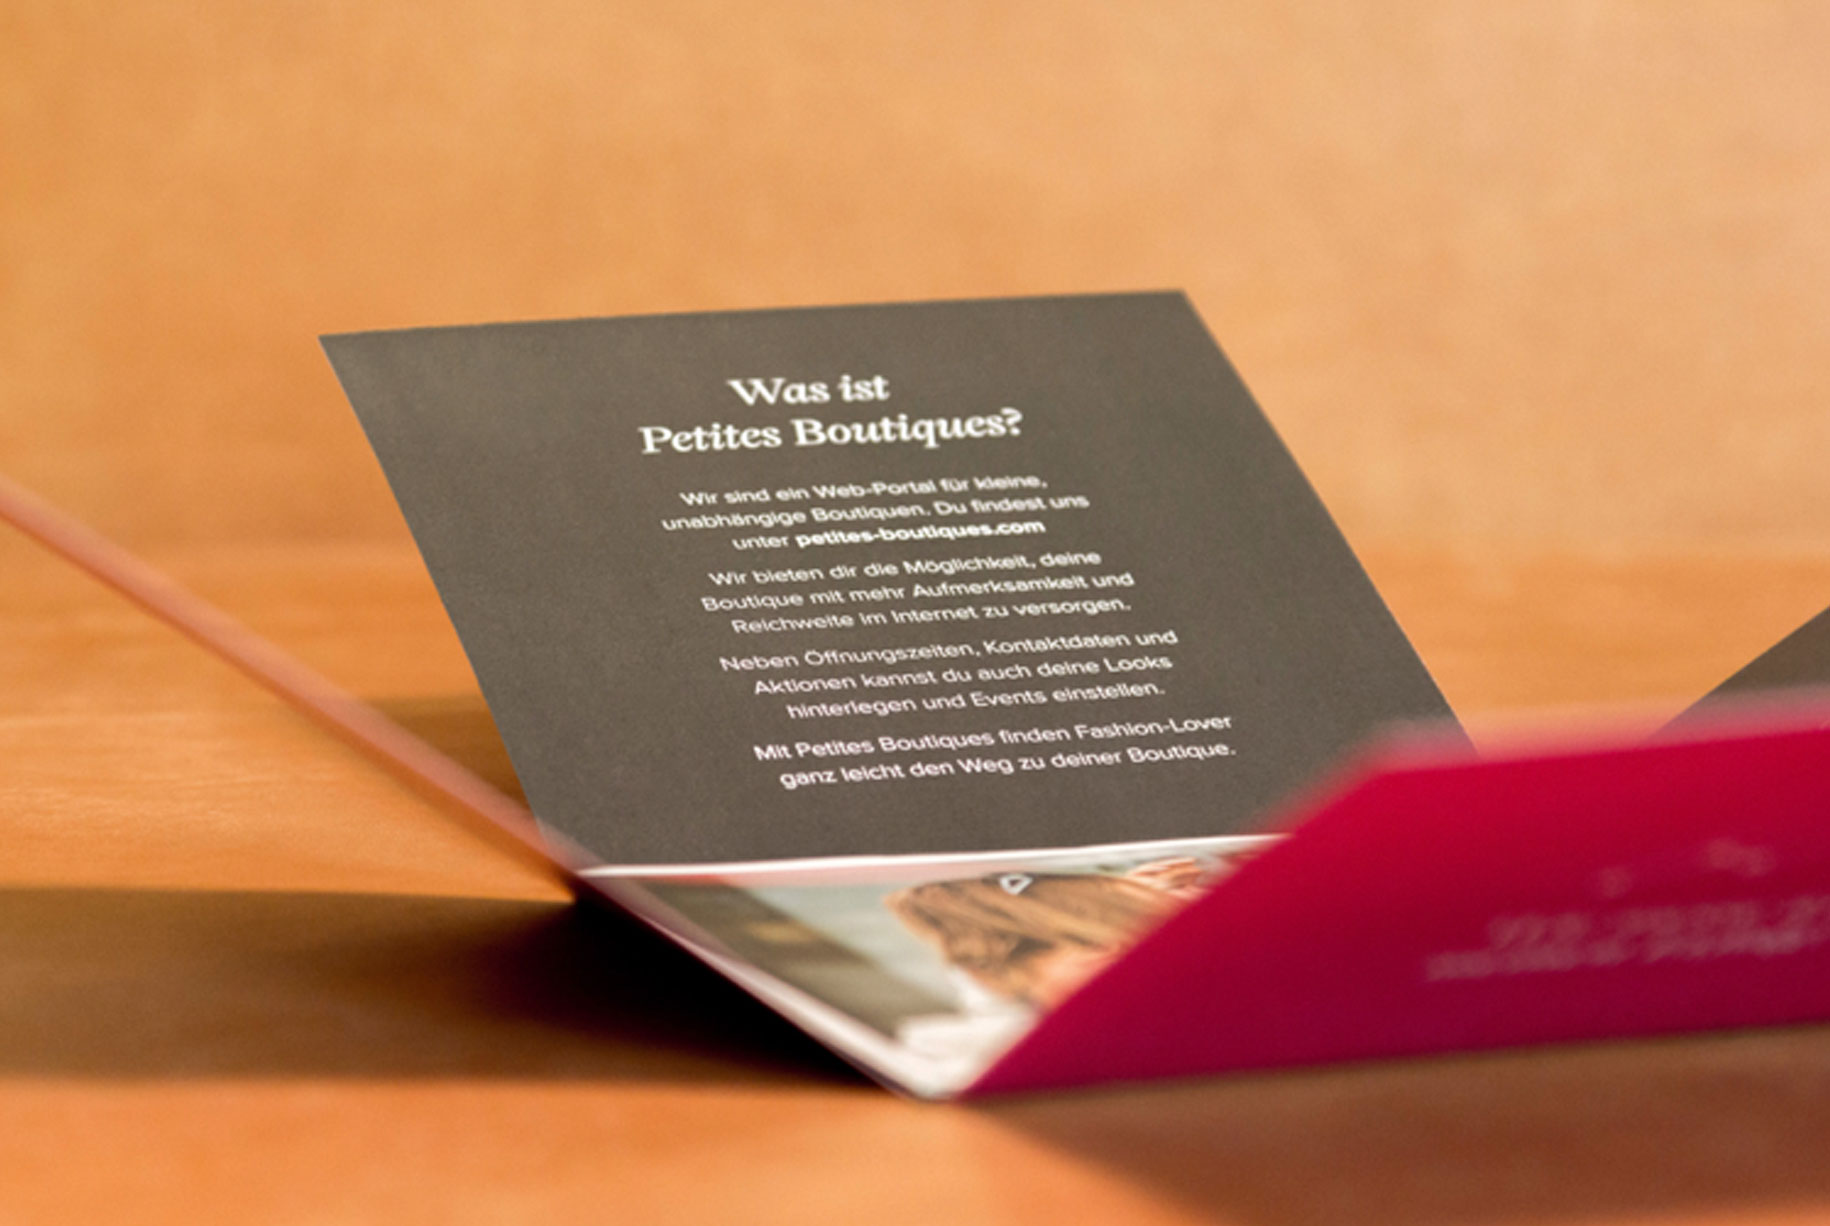 Marketing brochure to acquire new customers